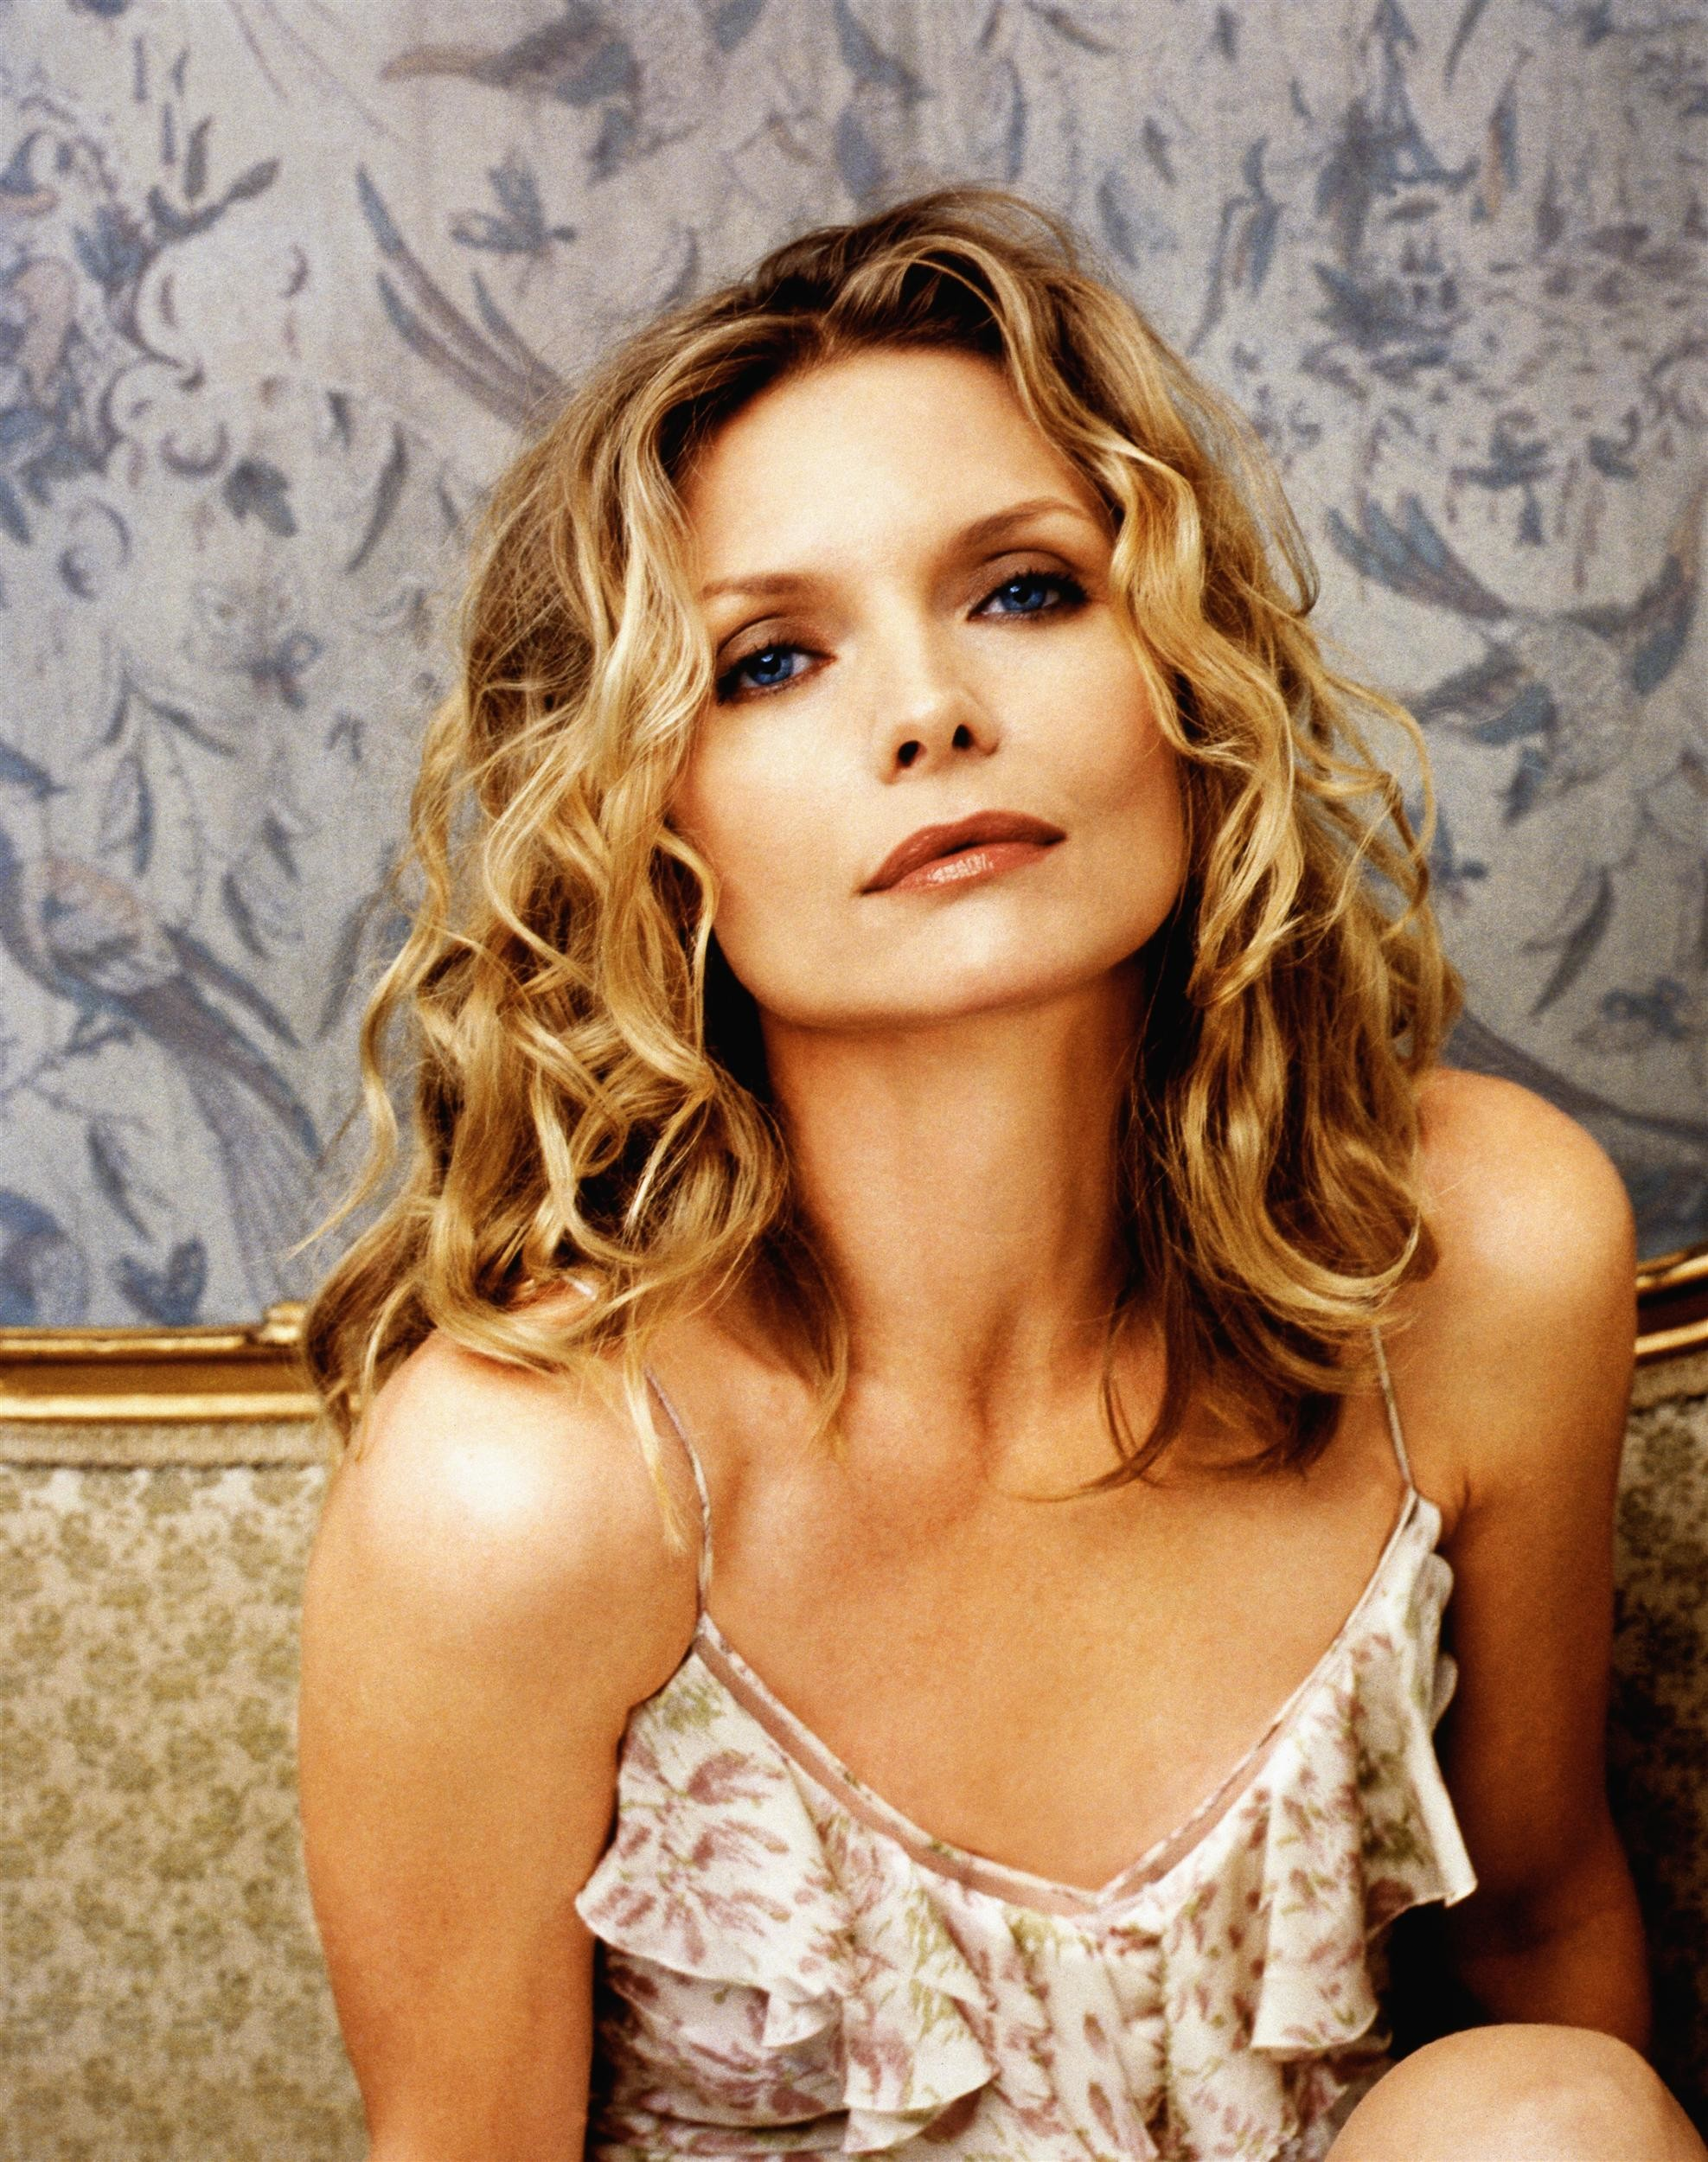 Res: 1975x2500, Michelle Pfeiffer quality pic   michelle pfeiffer.o m g,look at .